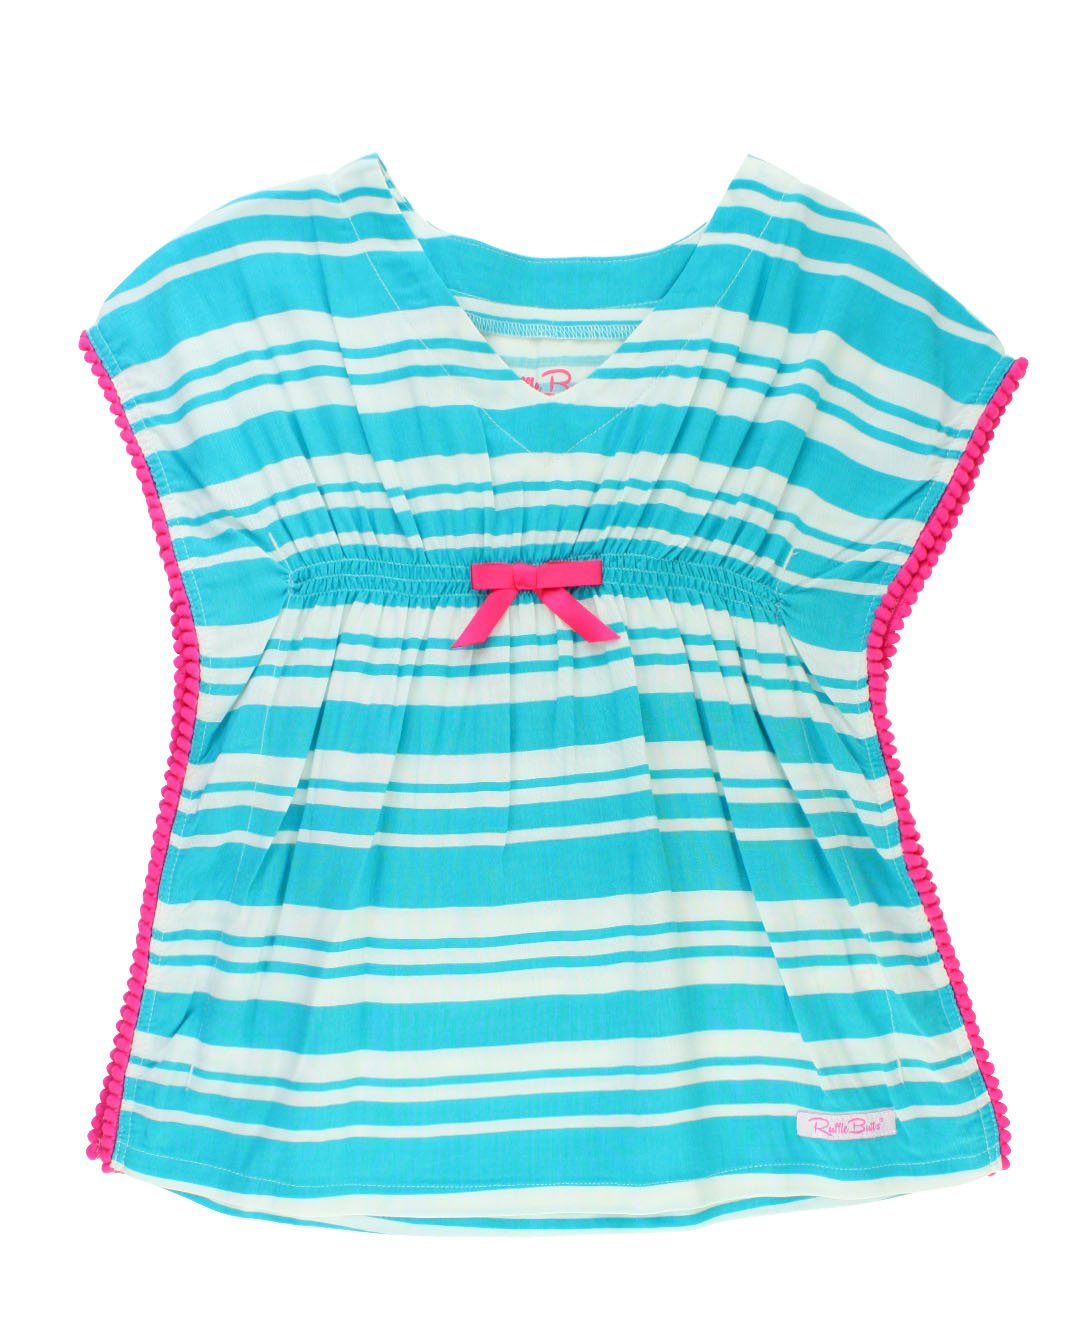 568bc1980a RuffleButts Infant/Toddler Girls Turquoise Stripe Kaftan Swimsuit Cover up  Tunic w/Pom Poms - Blue - 12-24m: Amazon.in: Baby